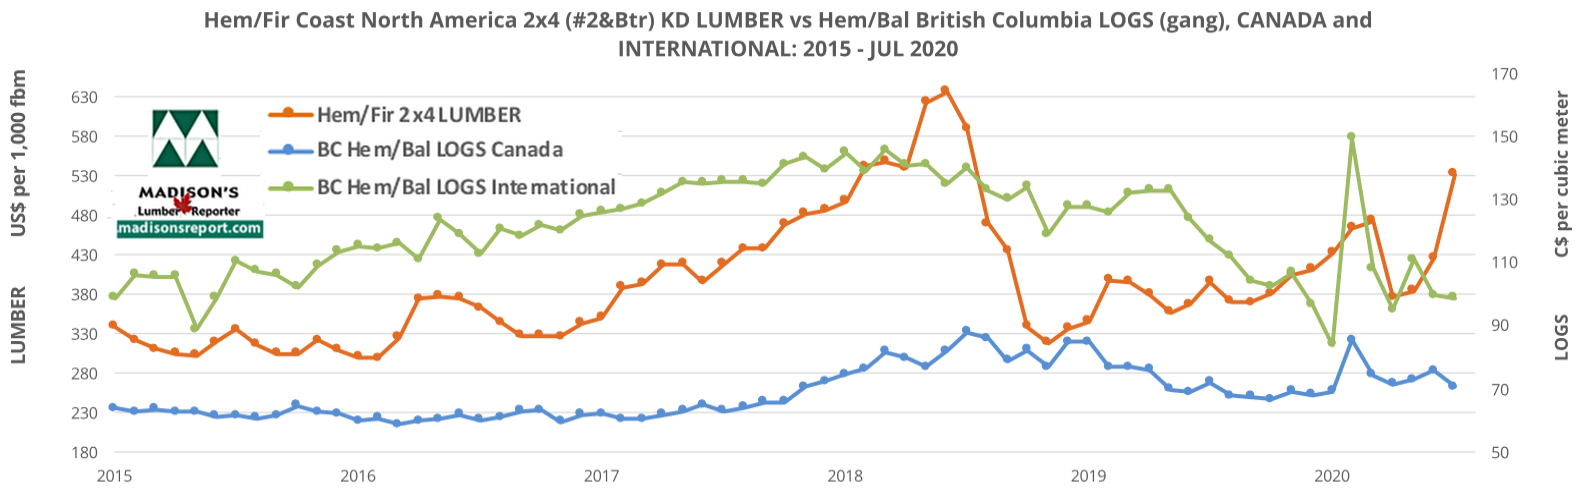 HemFir-2x4-and-HemBal-logs-5HemFir-2x4-and-HemBal-logs-5year-AUG 2020